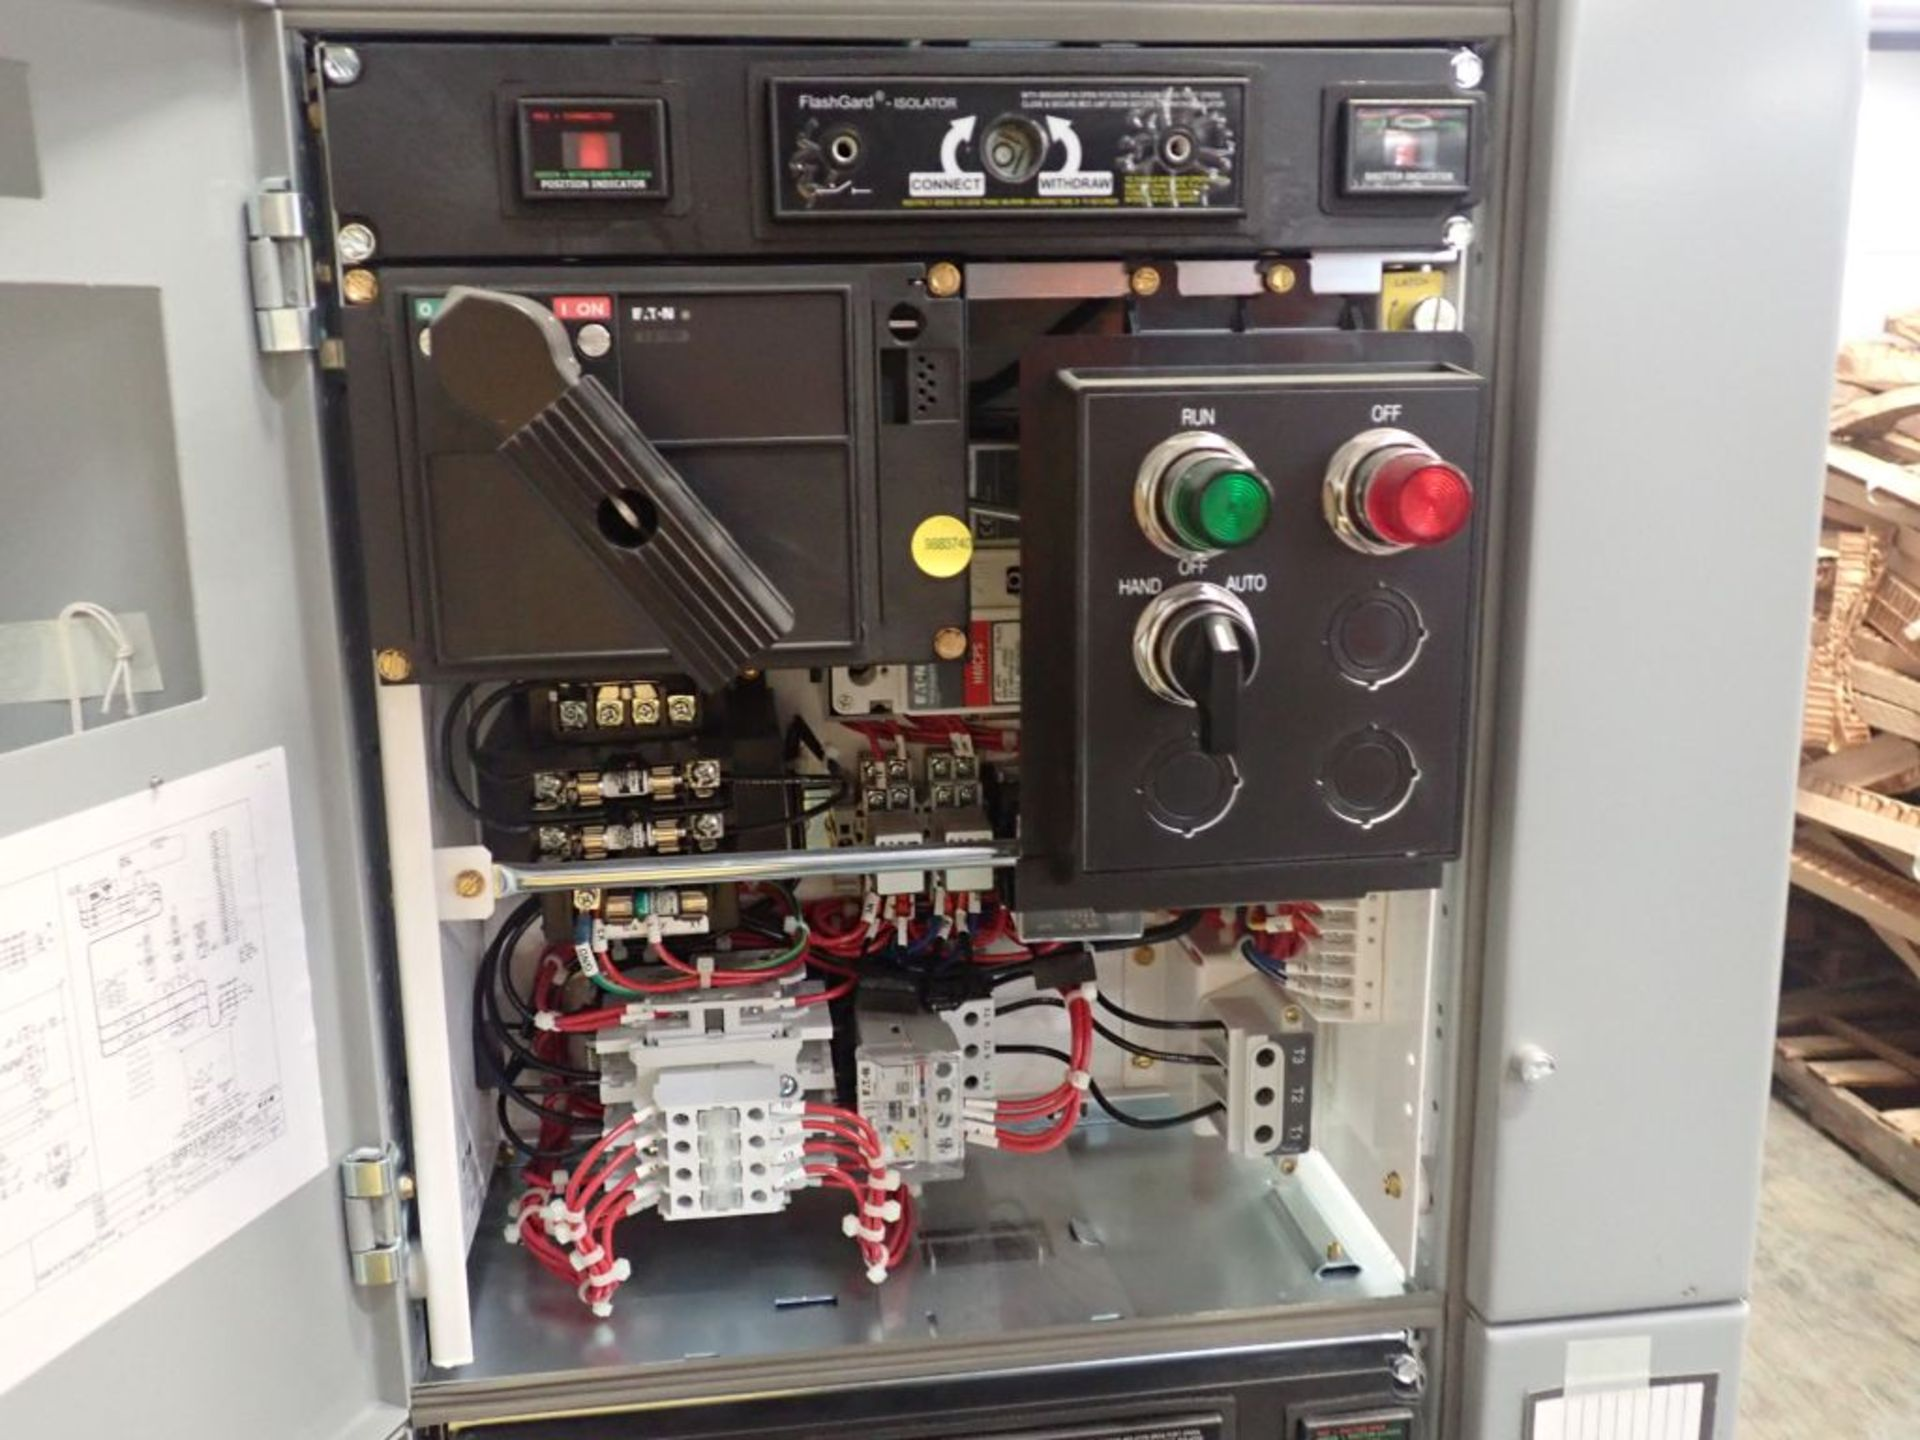 Eaton Freedom Flashgard Motor Control Center w/Components | (5) F206-15A-10HP; (4) F206-30A-10HP; ( - Image 27 of 84